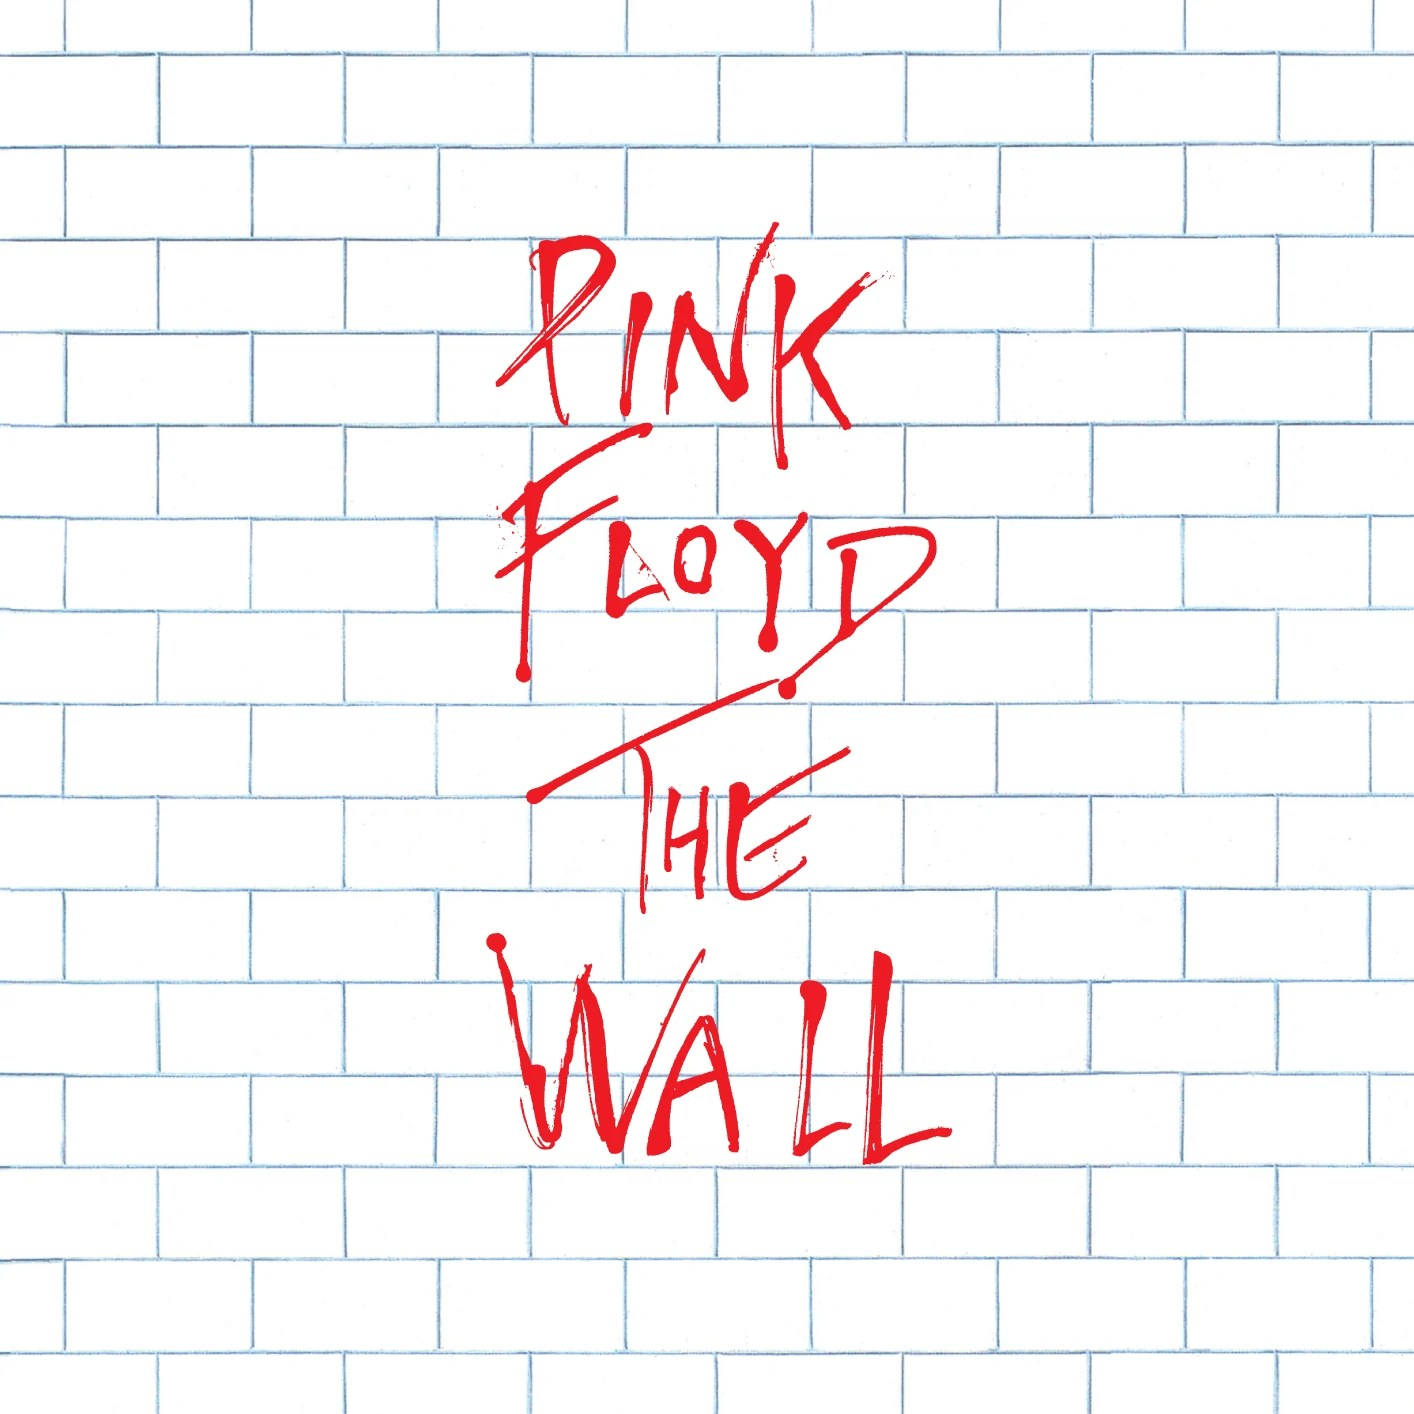 The Wall Pink Floyd Fandom